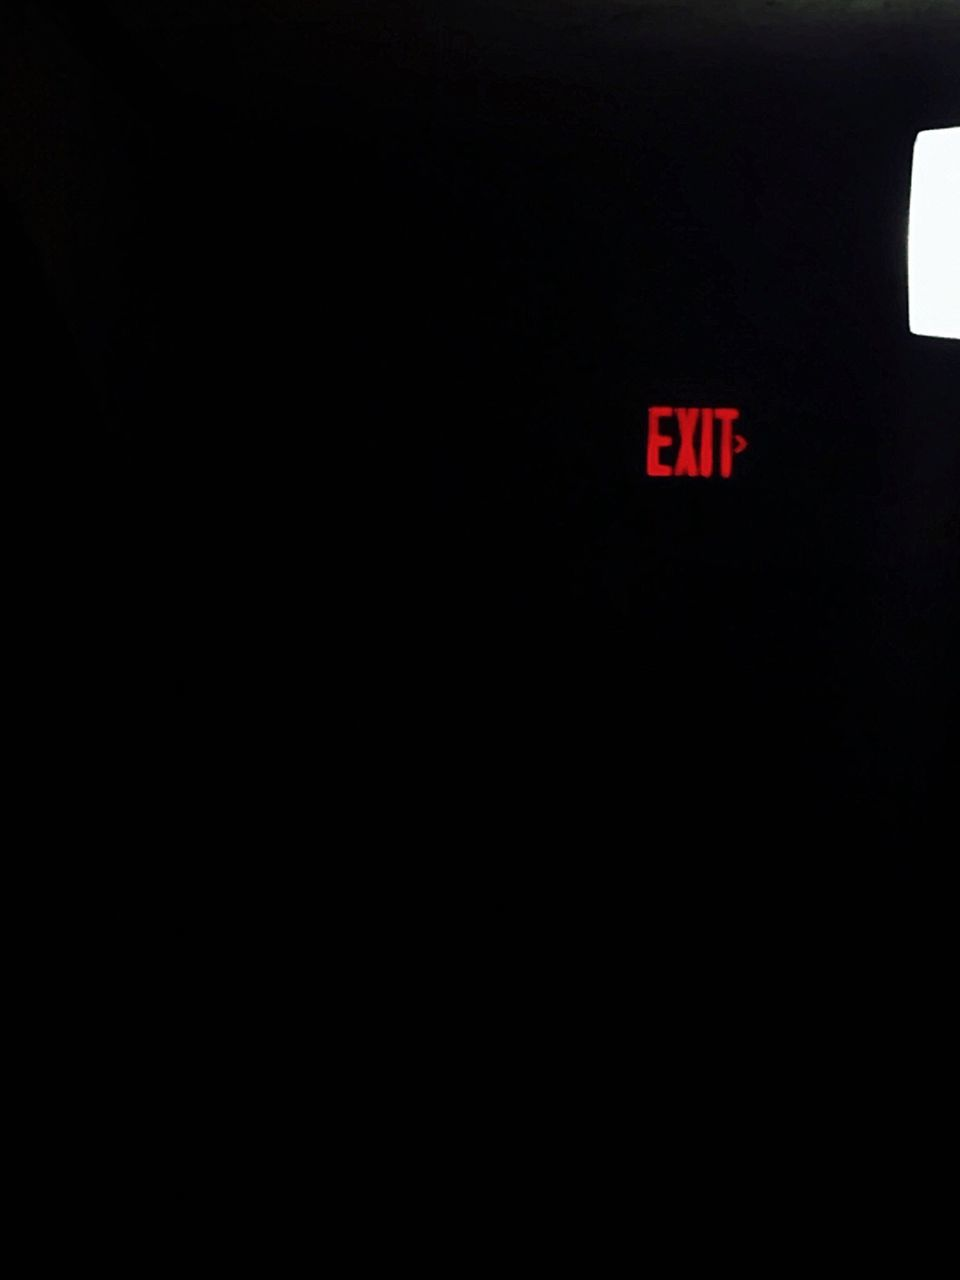 copy space, text, digital display, exit sign, digital clock, healthcare and medicine, emergency sign, no people, communication, indoors, red, hospital, illuminated, close-up, black background, day